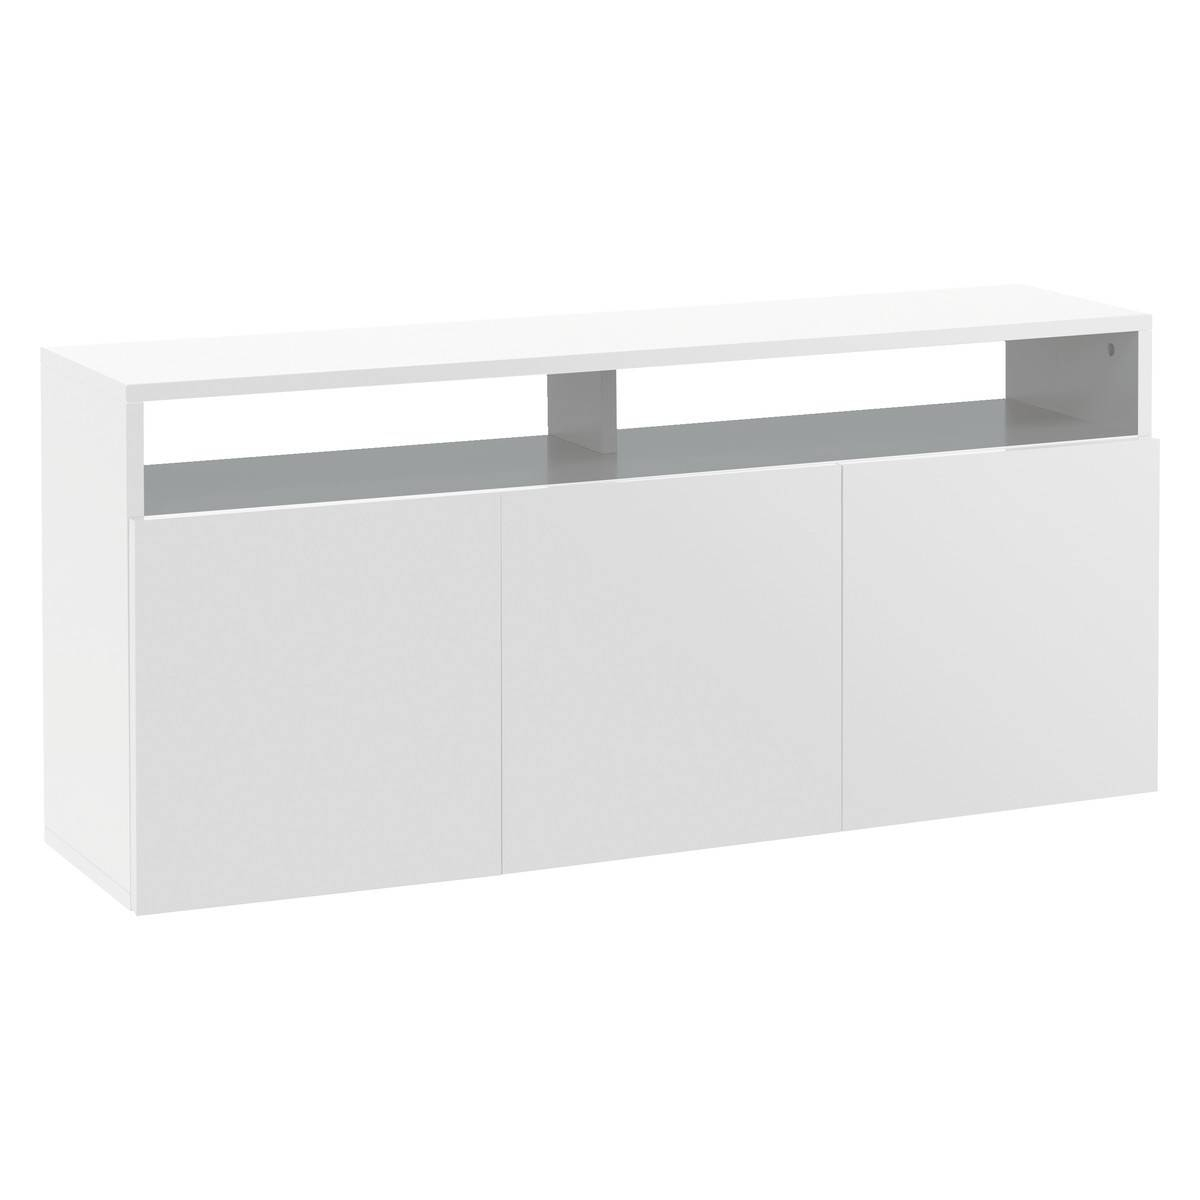 Kubrik White High Gloss Large Sideboard | Buy Now At Habitat Uk Throughout Gloss White Sideboards (View 5 of 15)